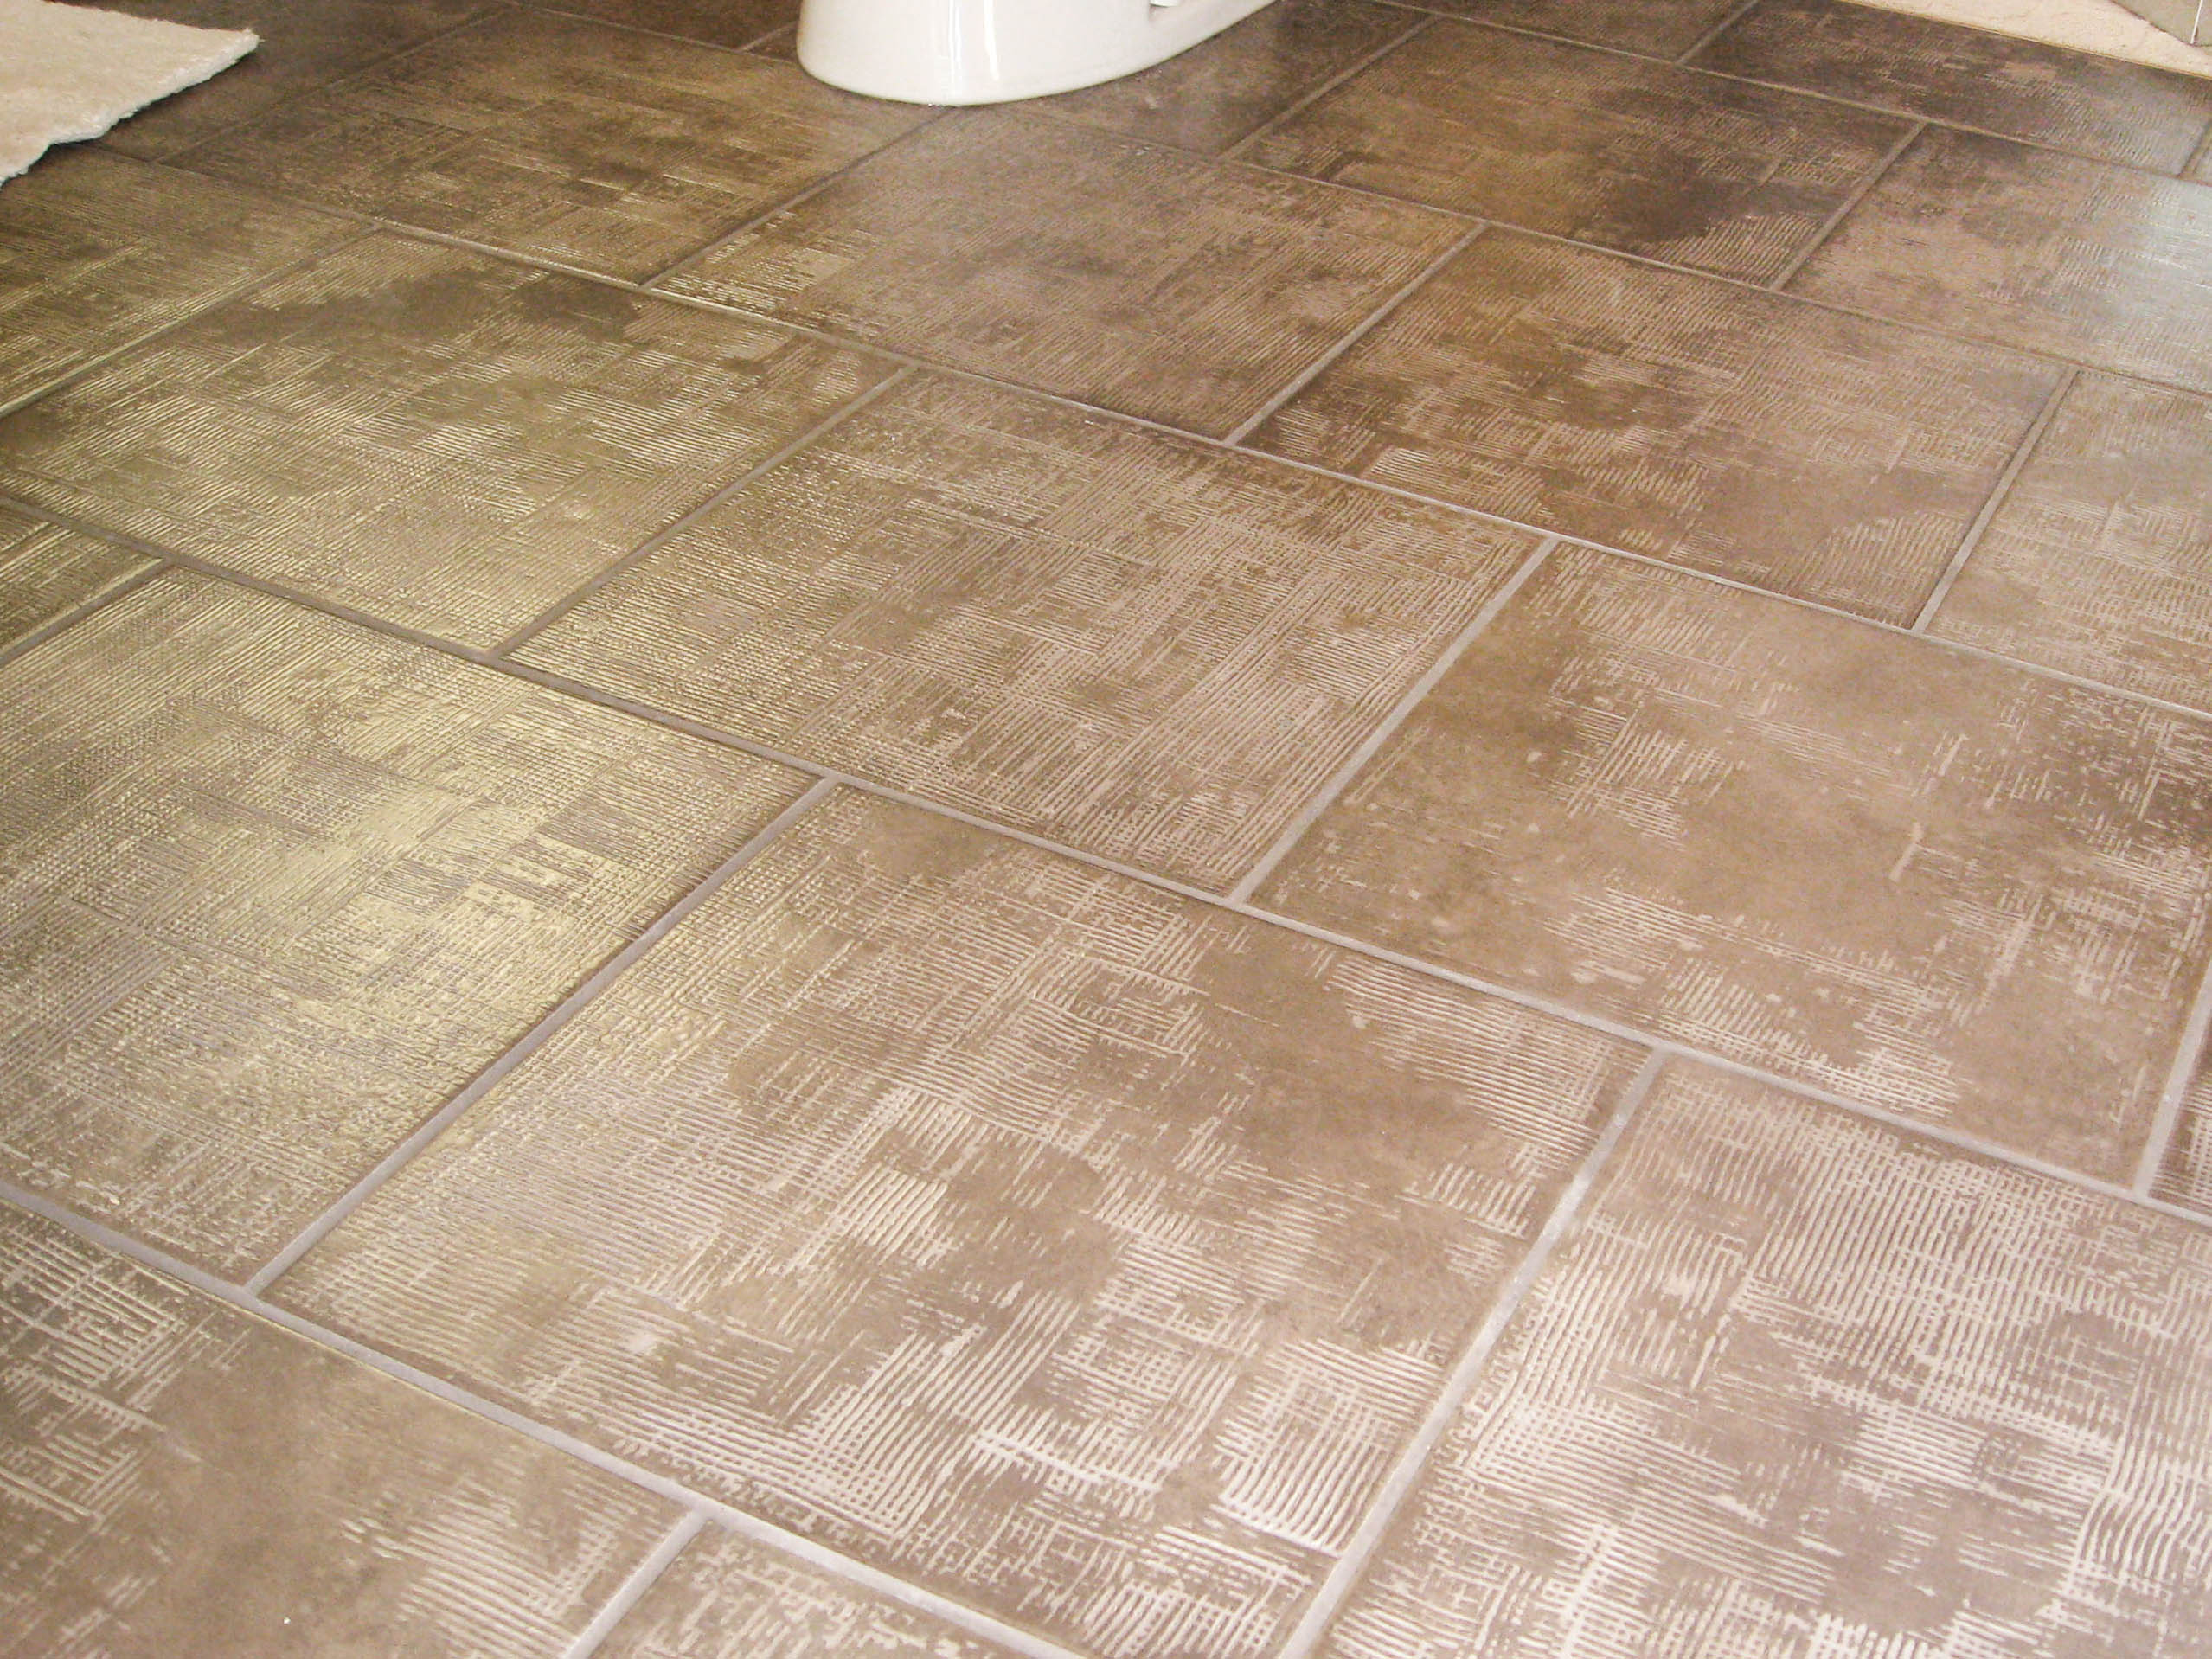 Bathroom Floors Seattle Tile Contractor Irc Services